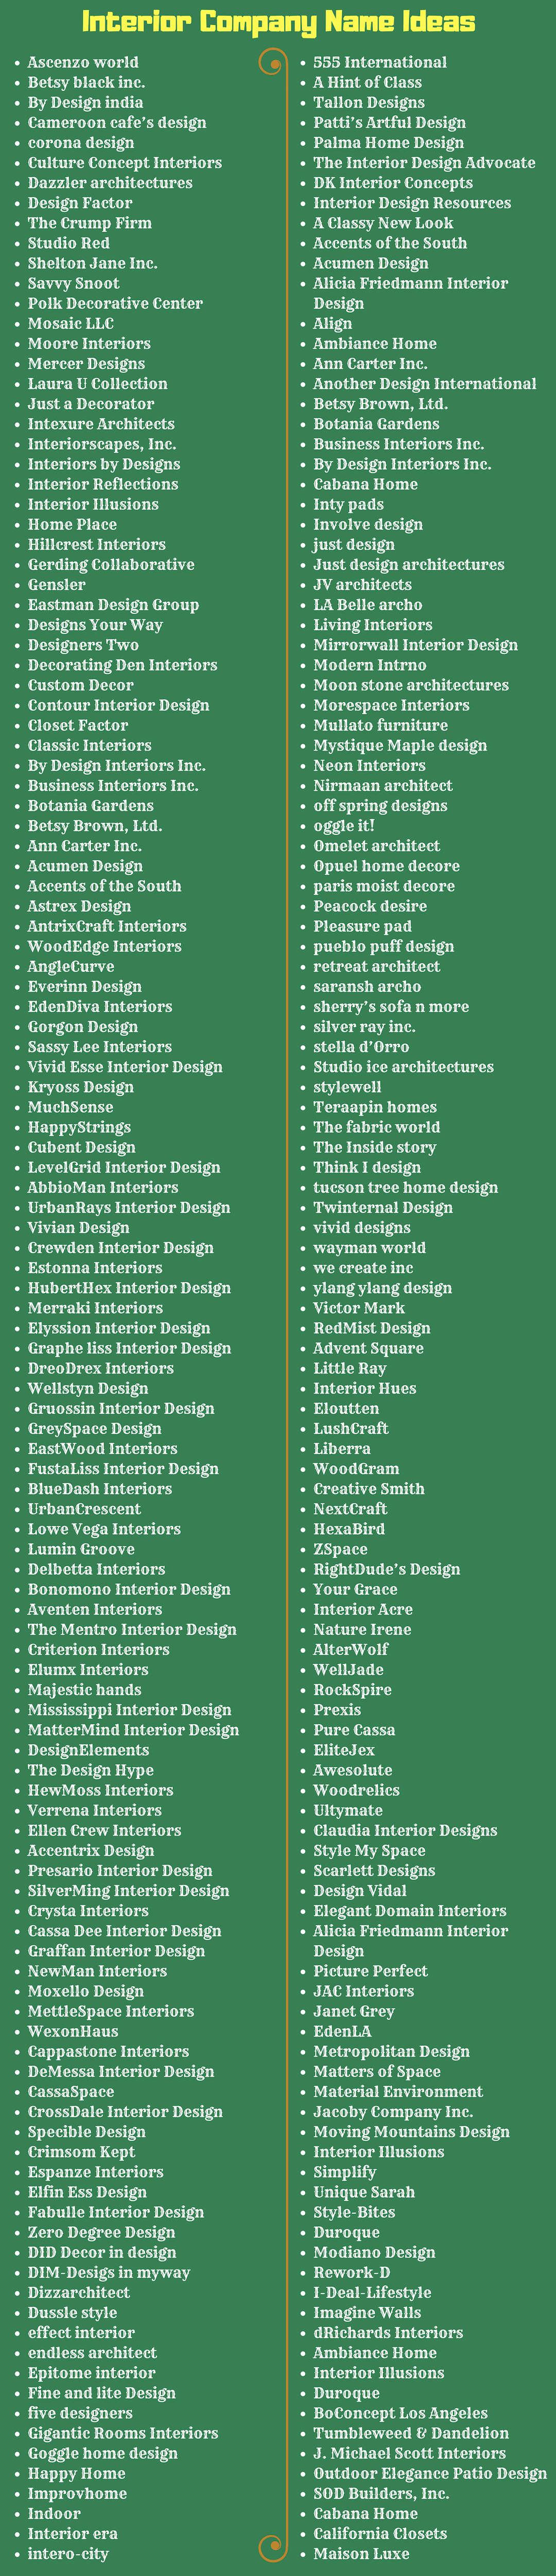 350 Name Ideas For Your Interior Design Company